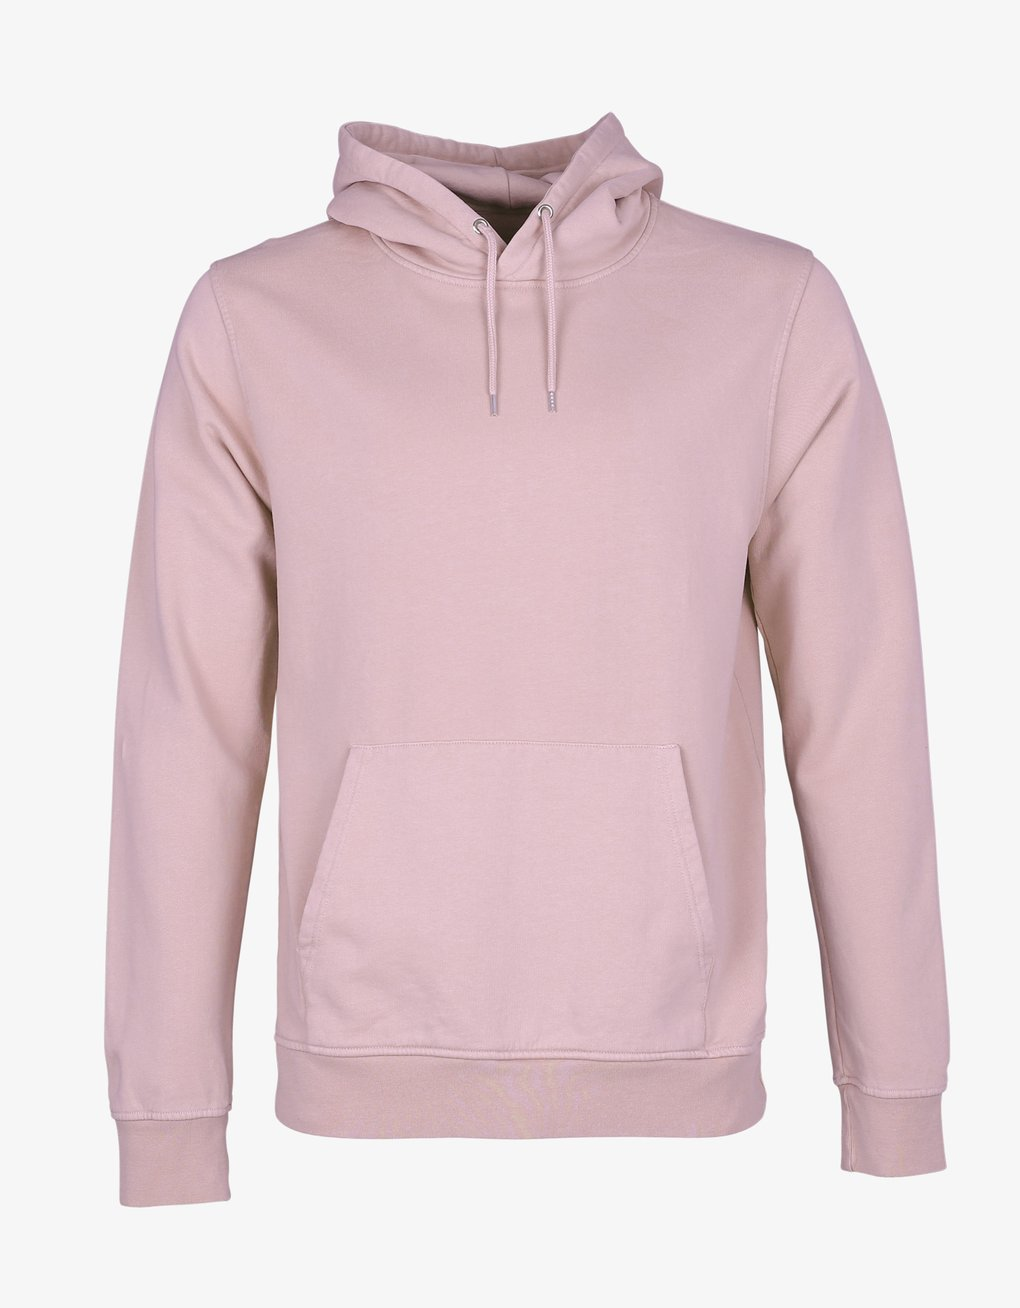 COLORFUL STANDARD | Classic Organic Hood | Faded Pink - LONDØNWORKS